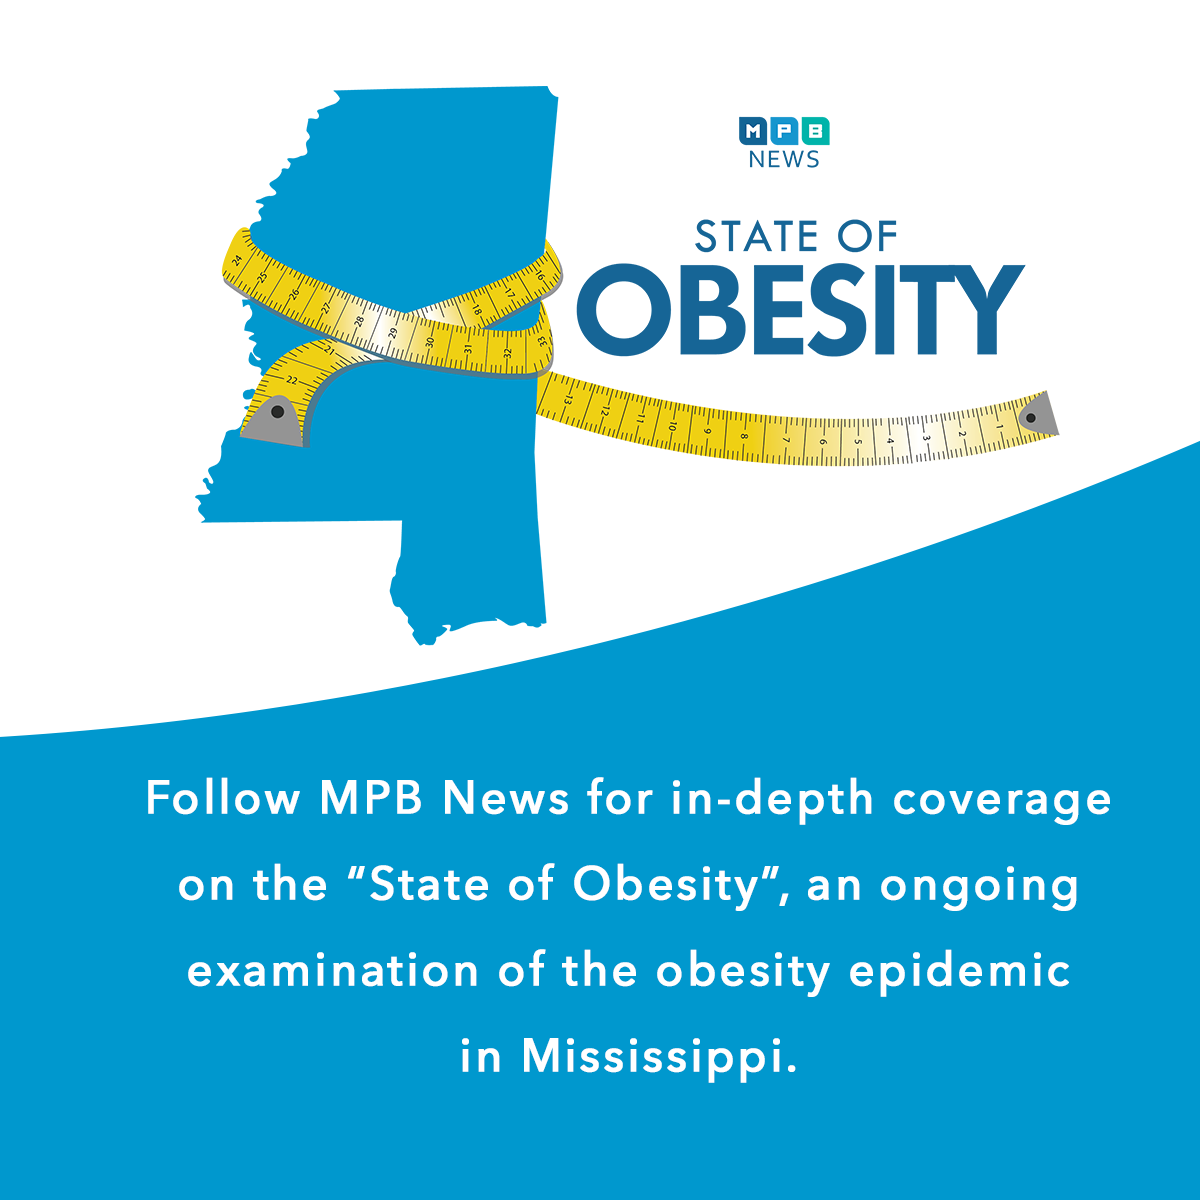 MPB News takes an in-depth look at the obesity epidemic in Mississippi.